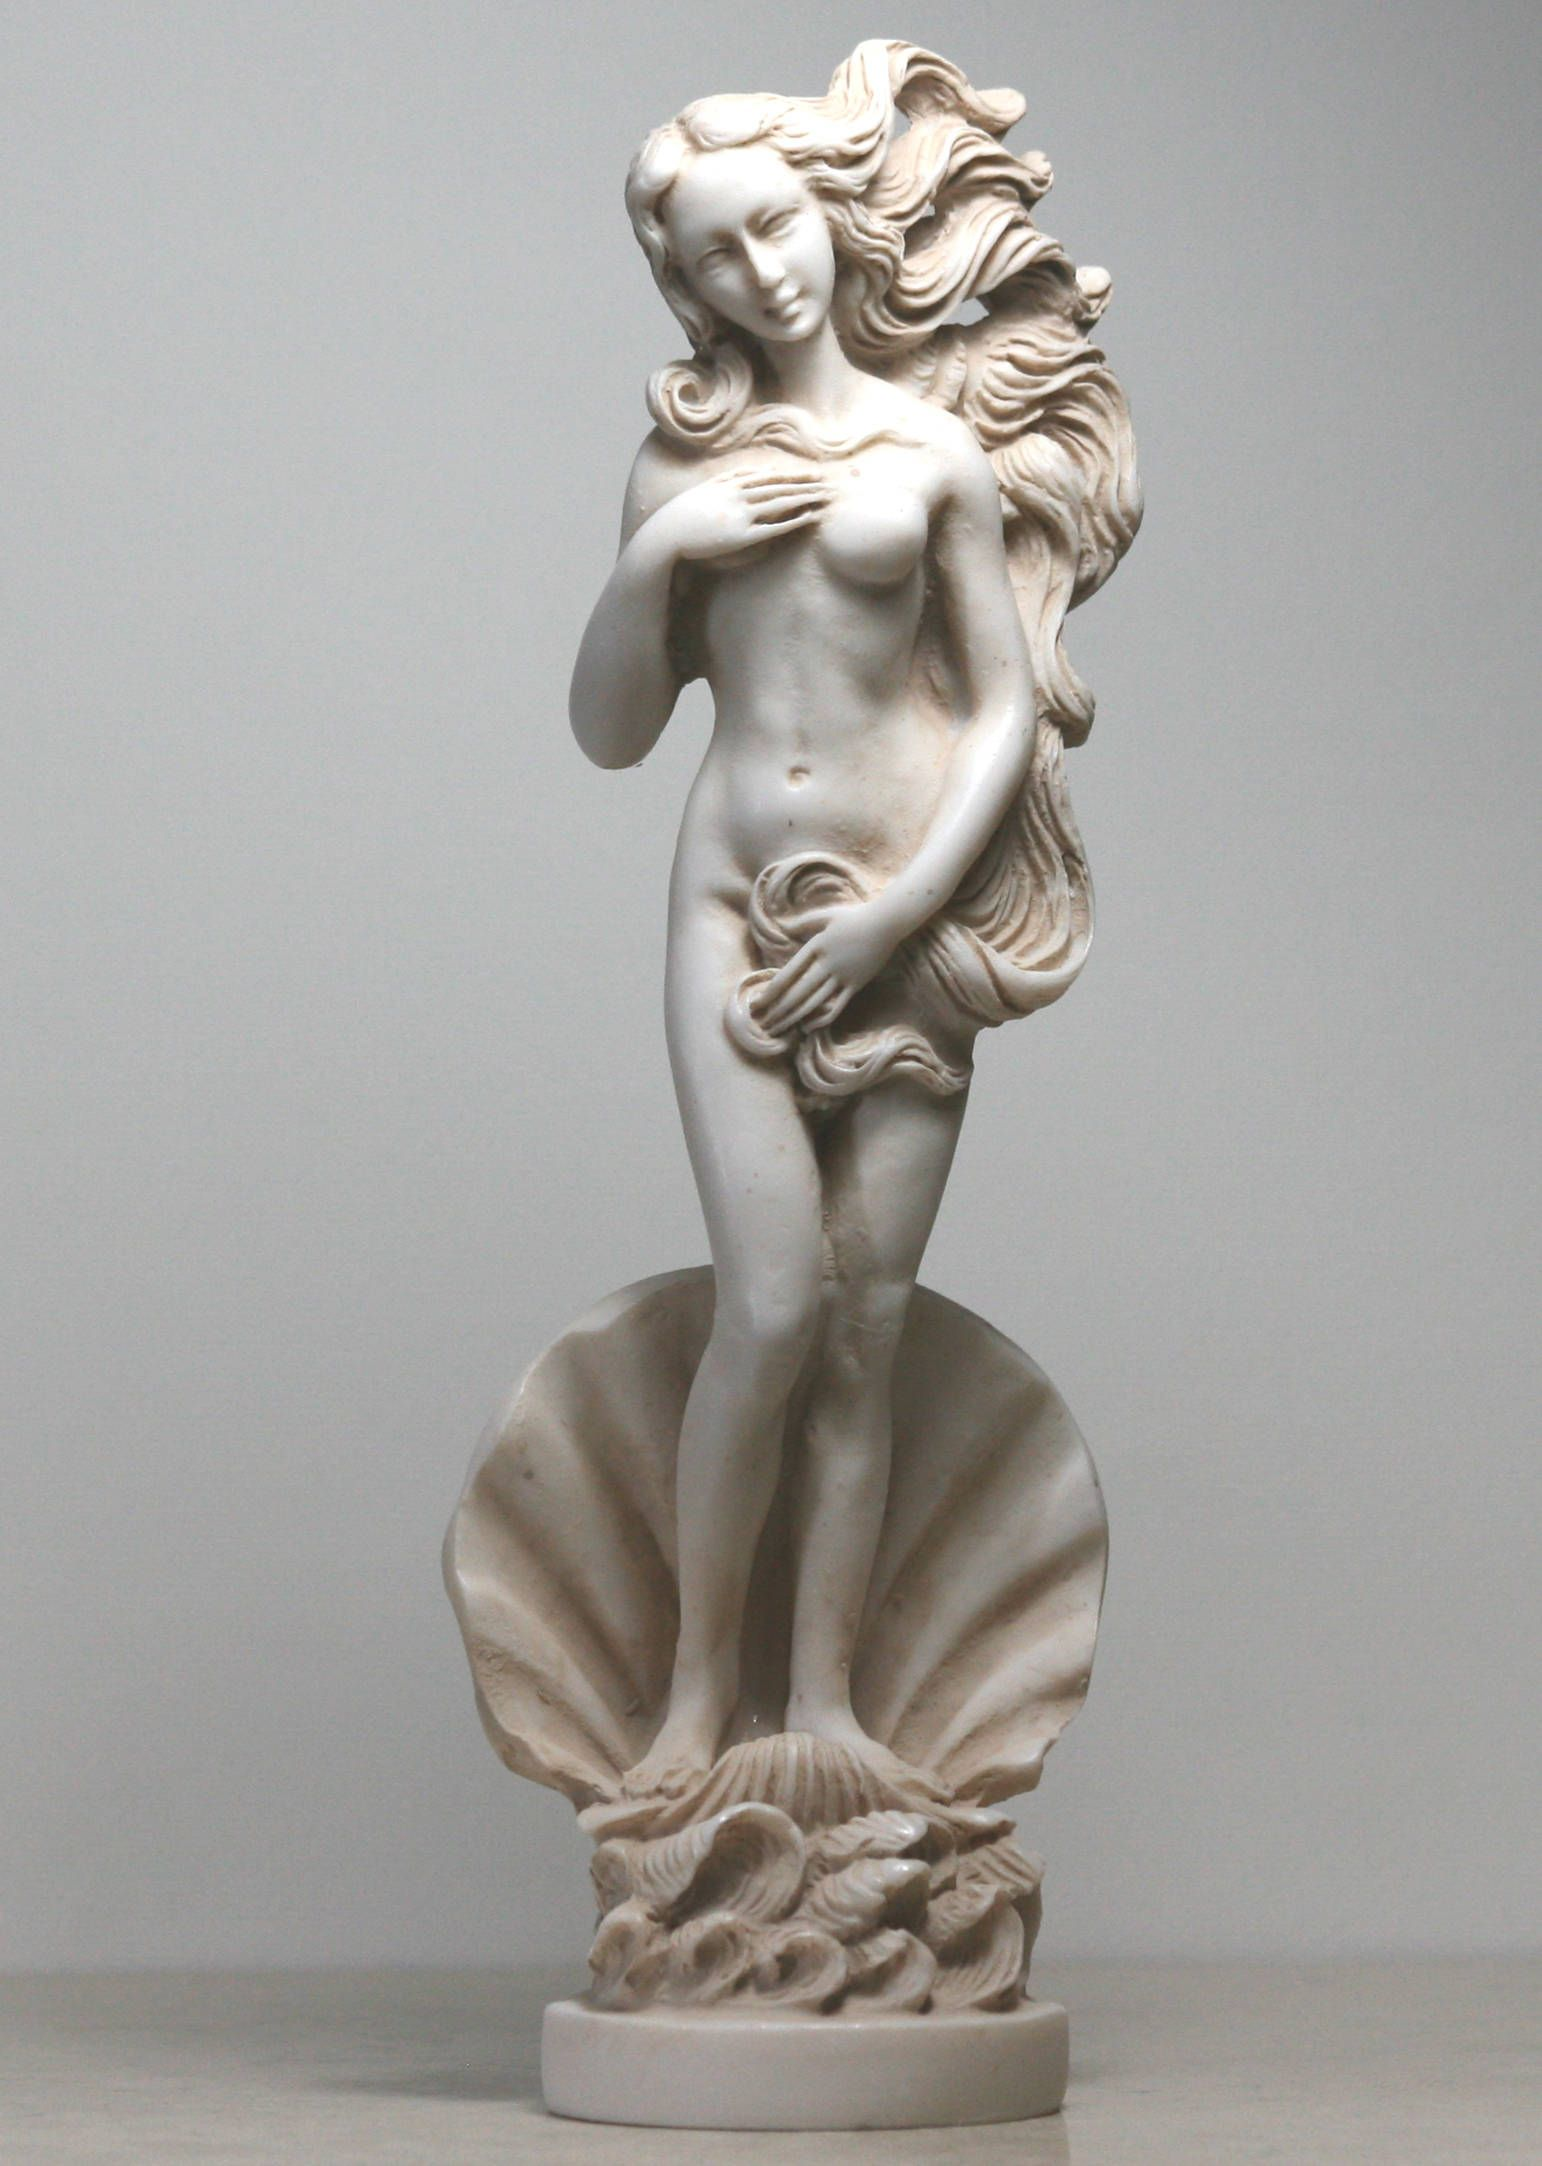 Birth of Goddess APHRODITE Venus Nude Female Statue Sculpture Figure Handmade 8in - 20,5 cm **Free Shipping & Free Tracking Number**